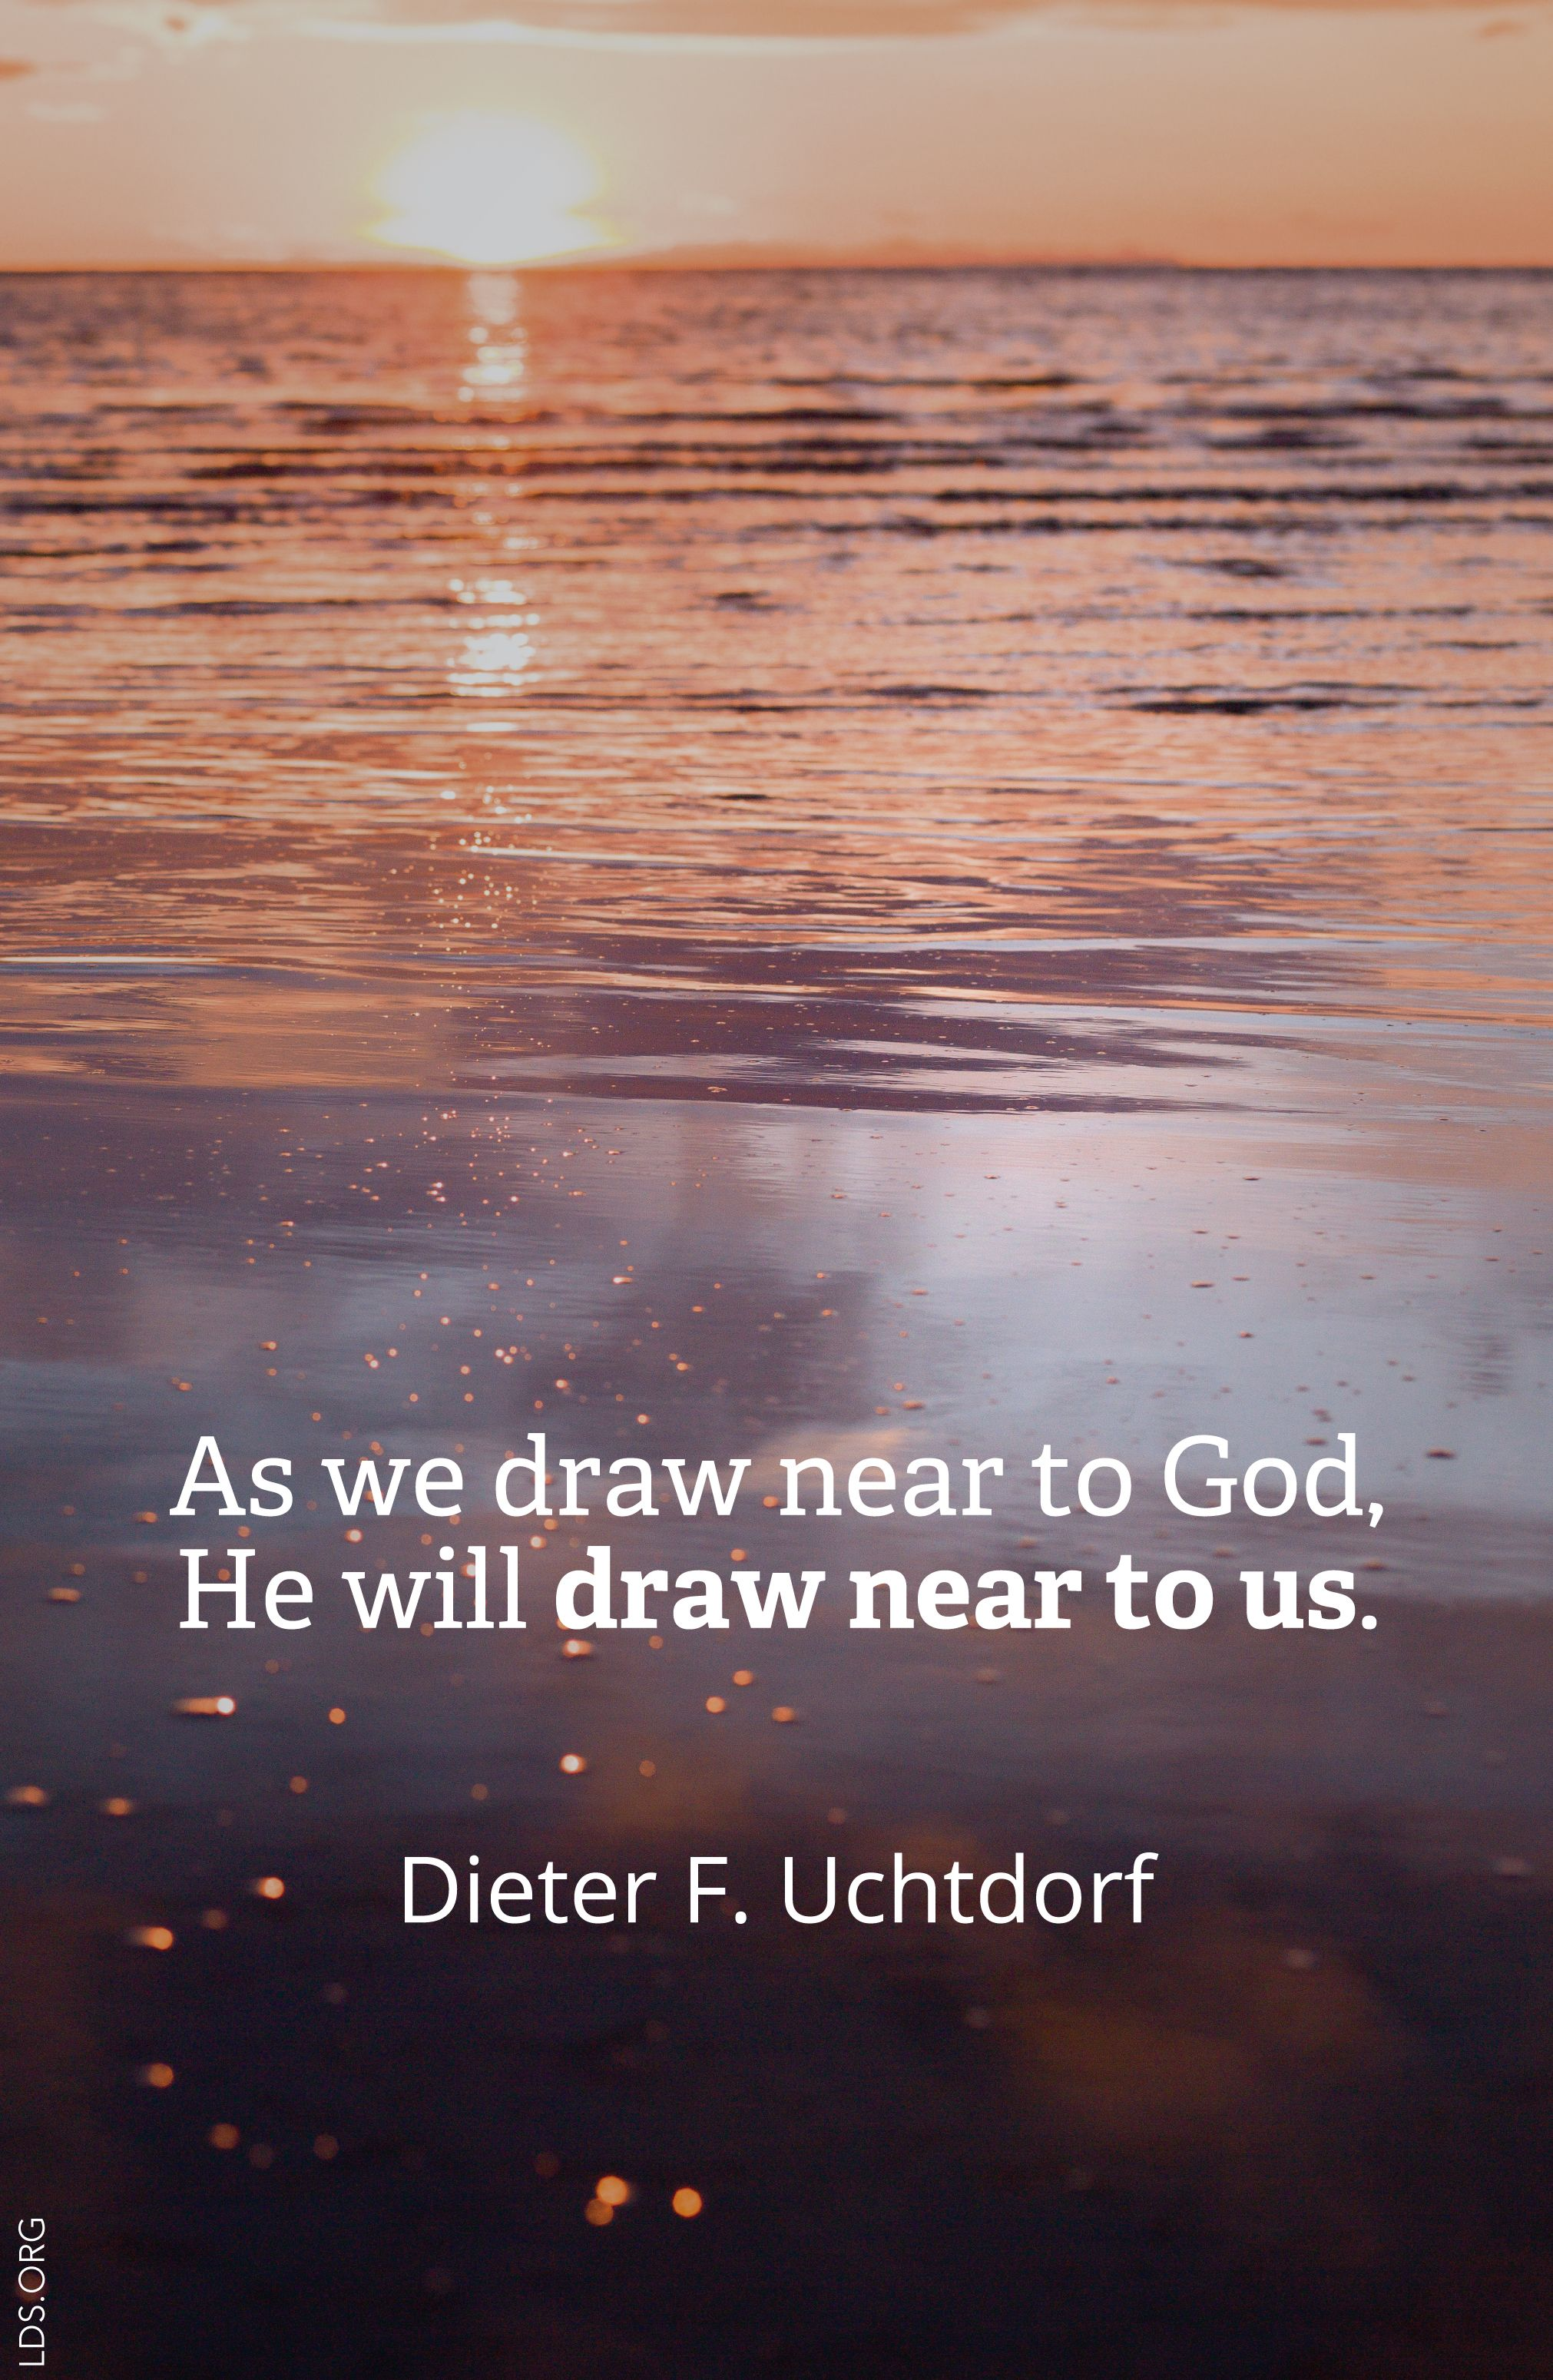 As We Draw Near To God He Will Draw Near To Us President Uchtdorf